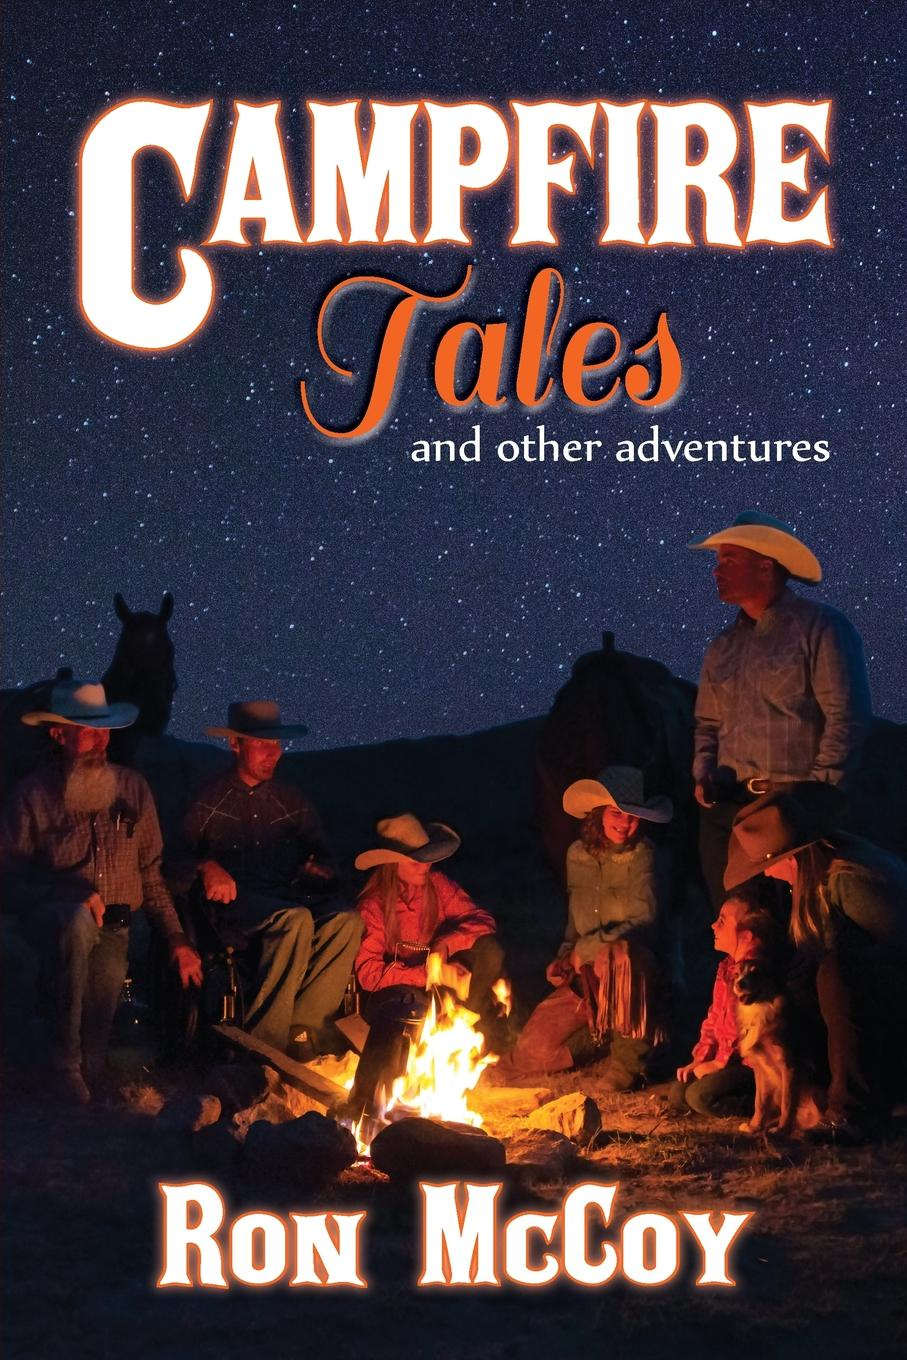 Ron McCoy. Campfire Tales. And Other Adventures